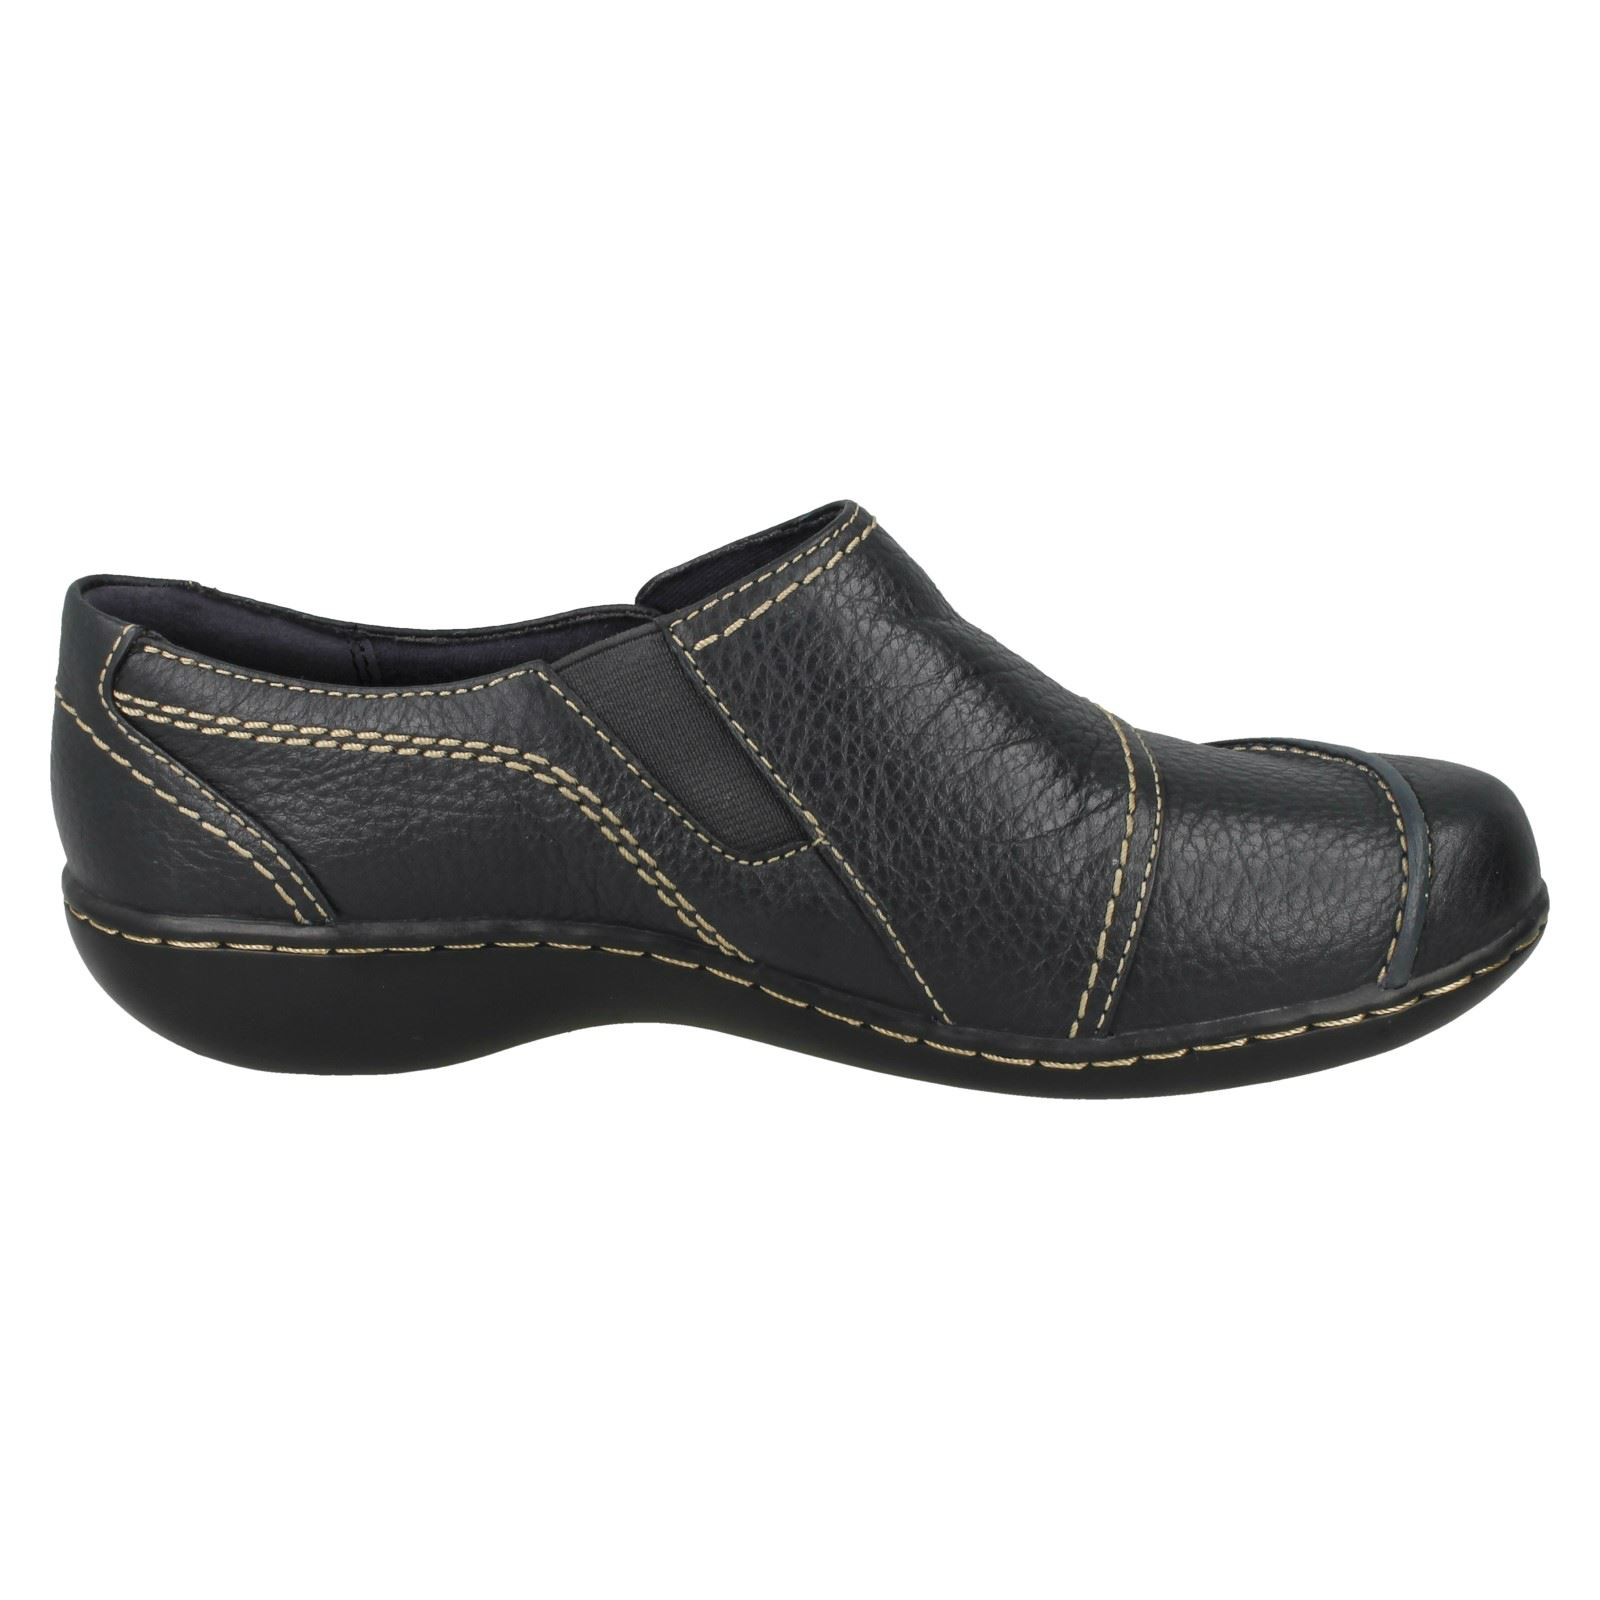 Ladies Clarks Slip On Casual Shoes 'Embrace Charm'